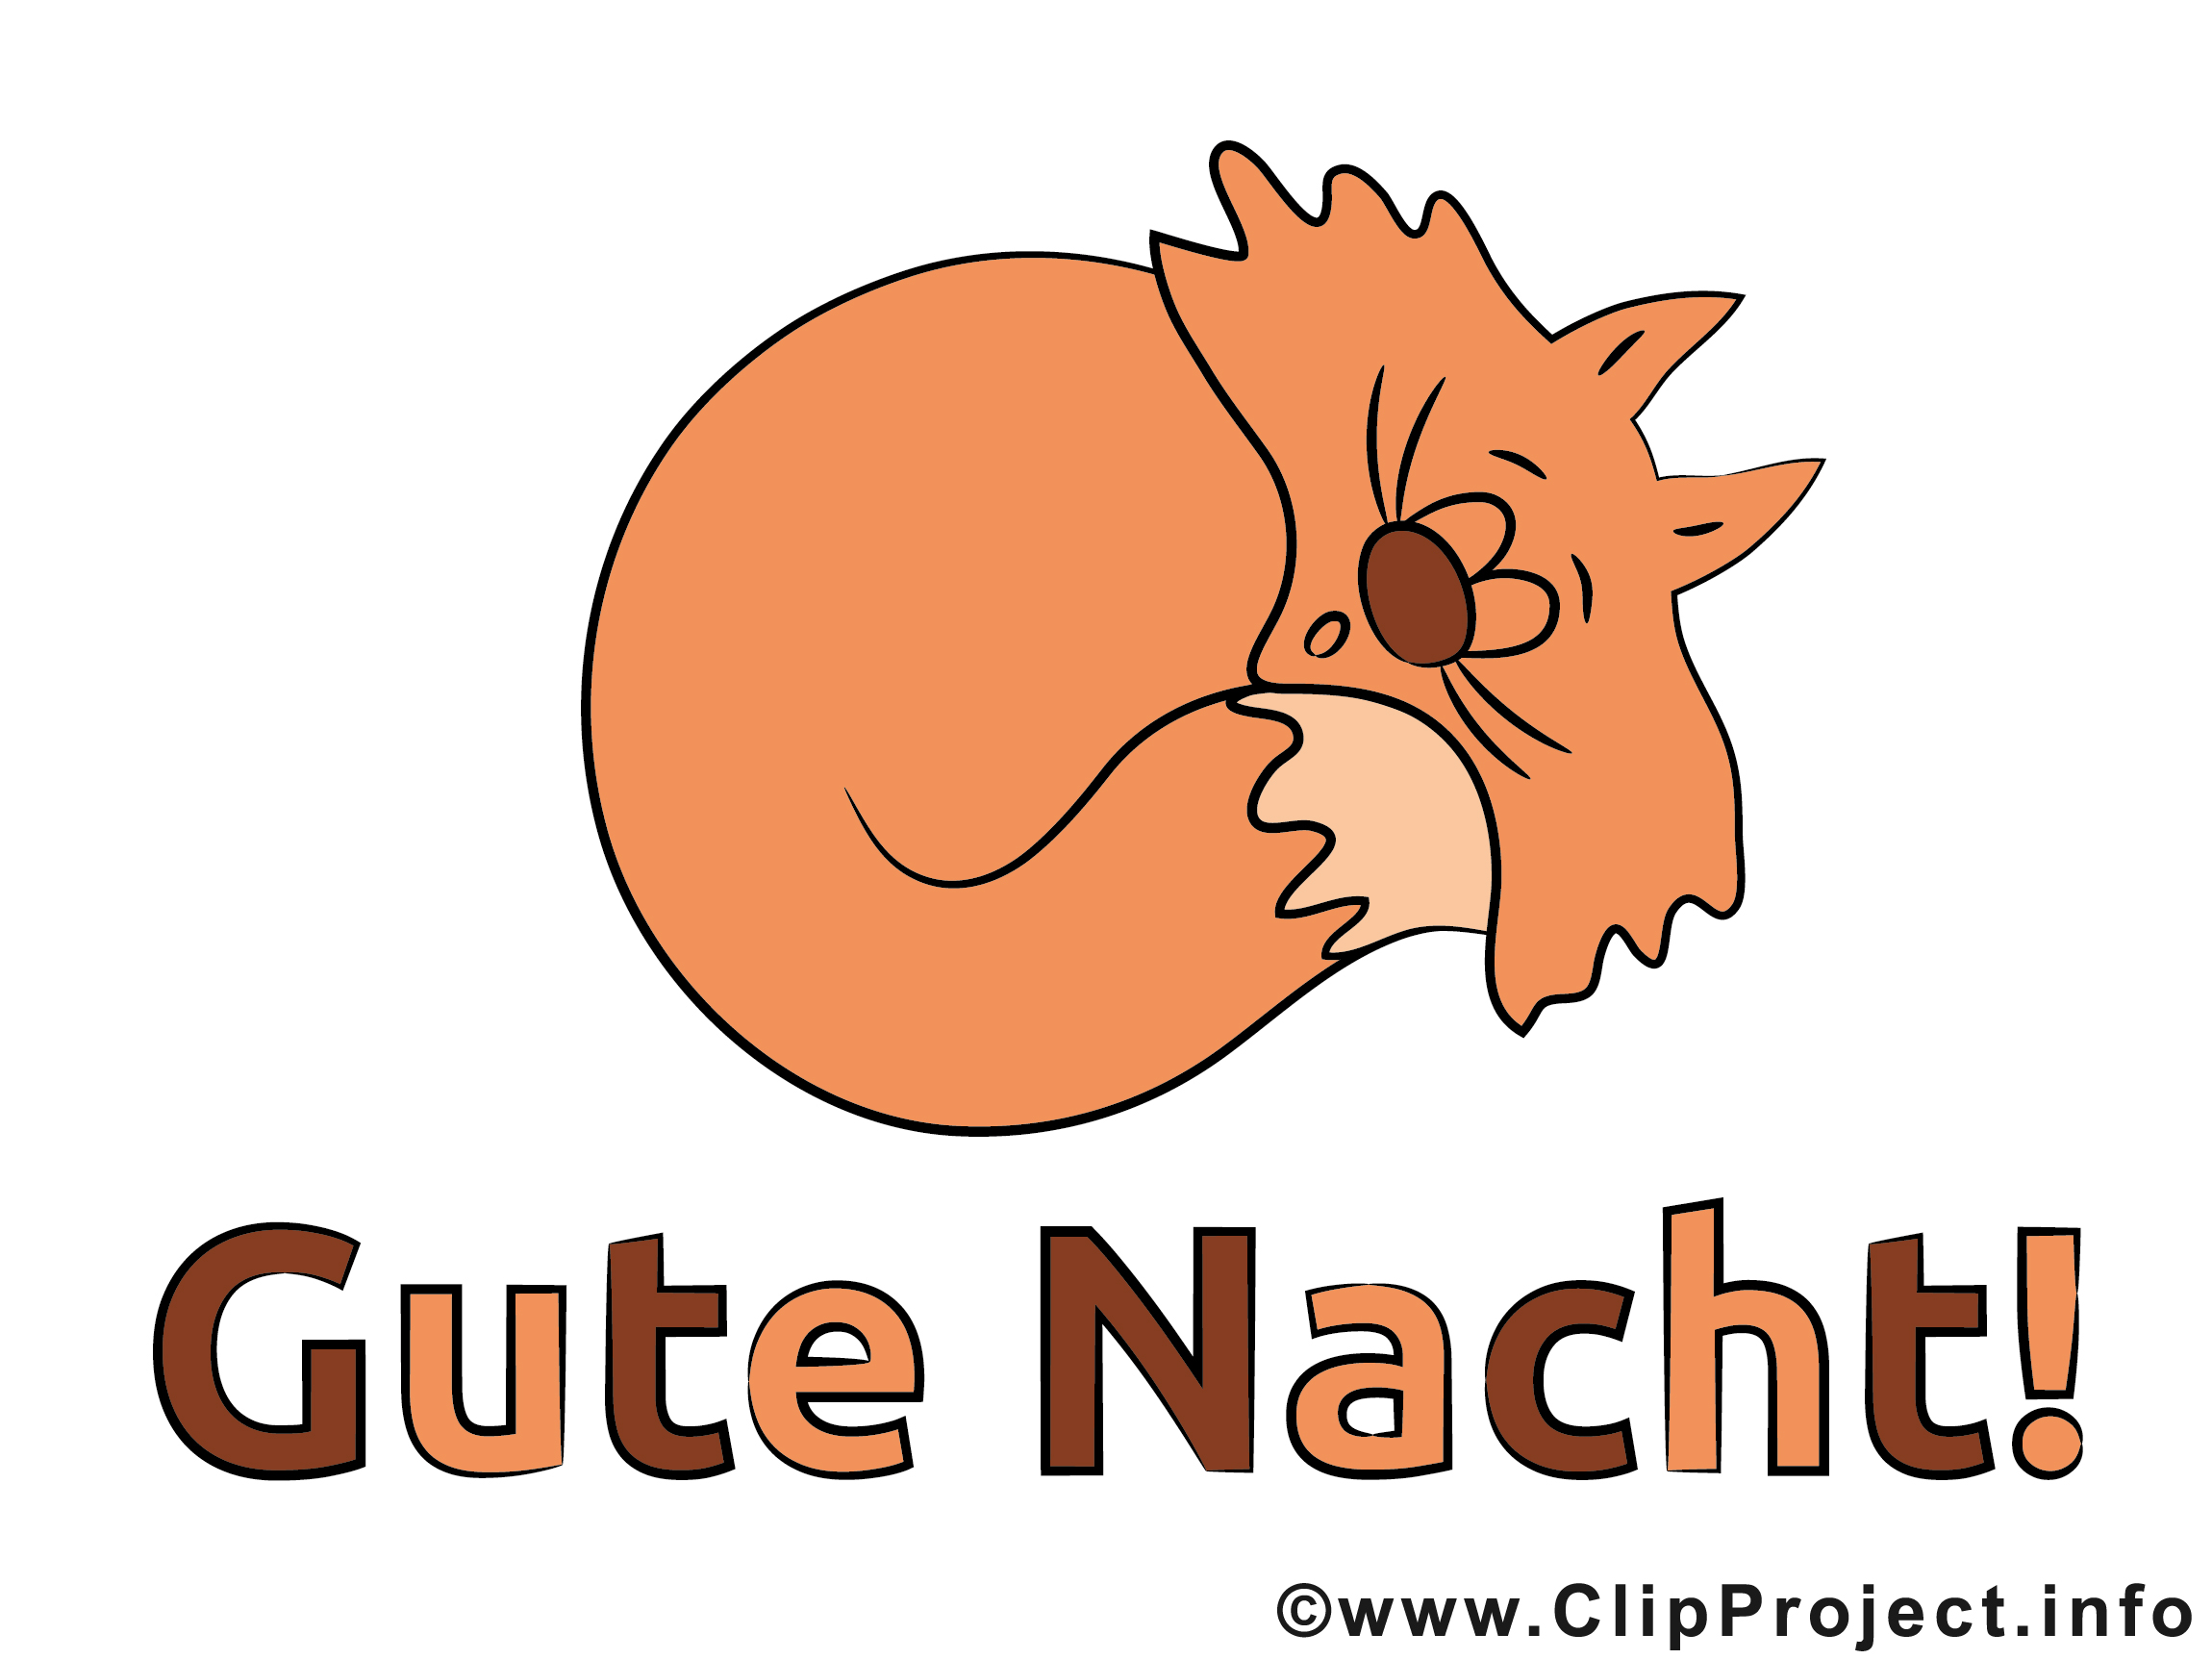 Clipart gute nacht. Clipartfest icon nchstes